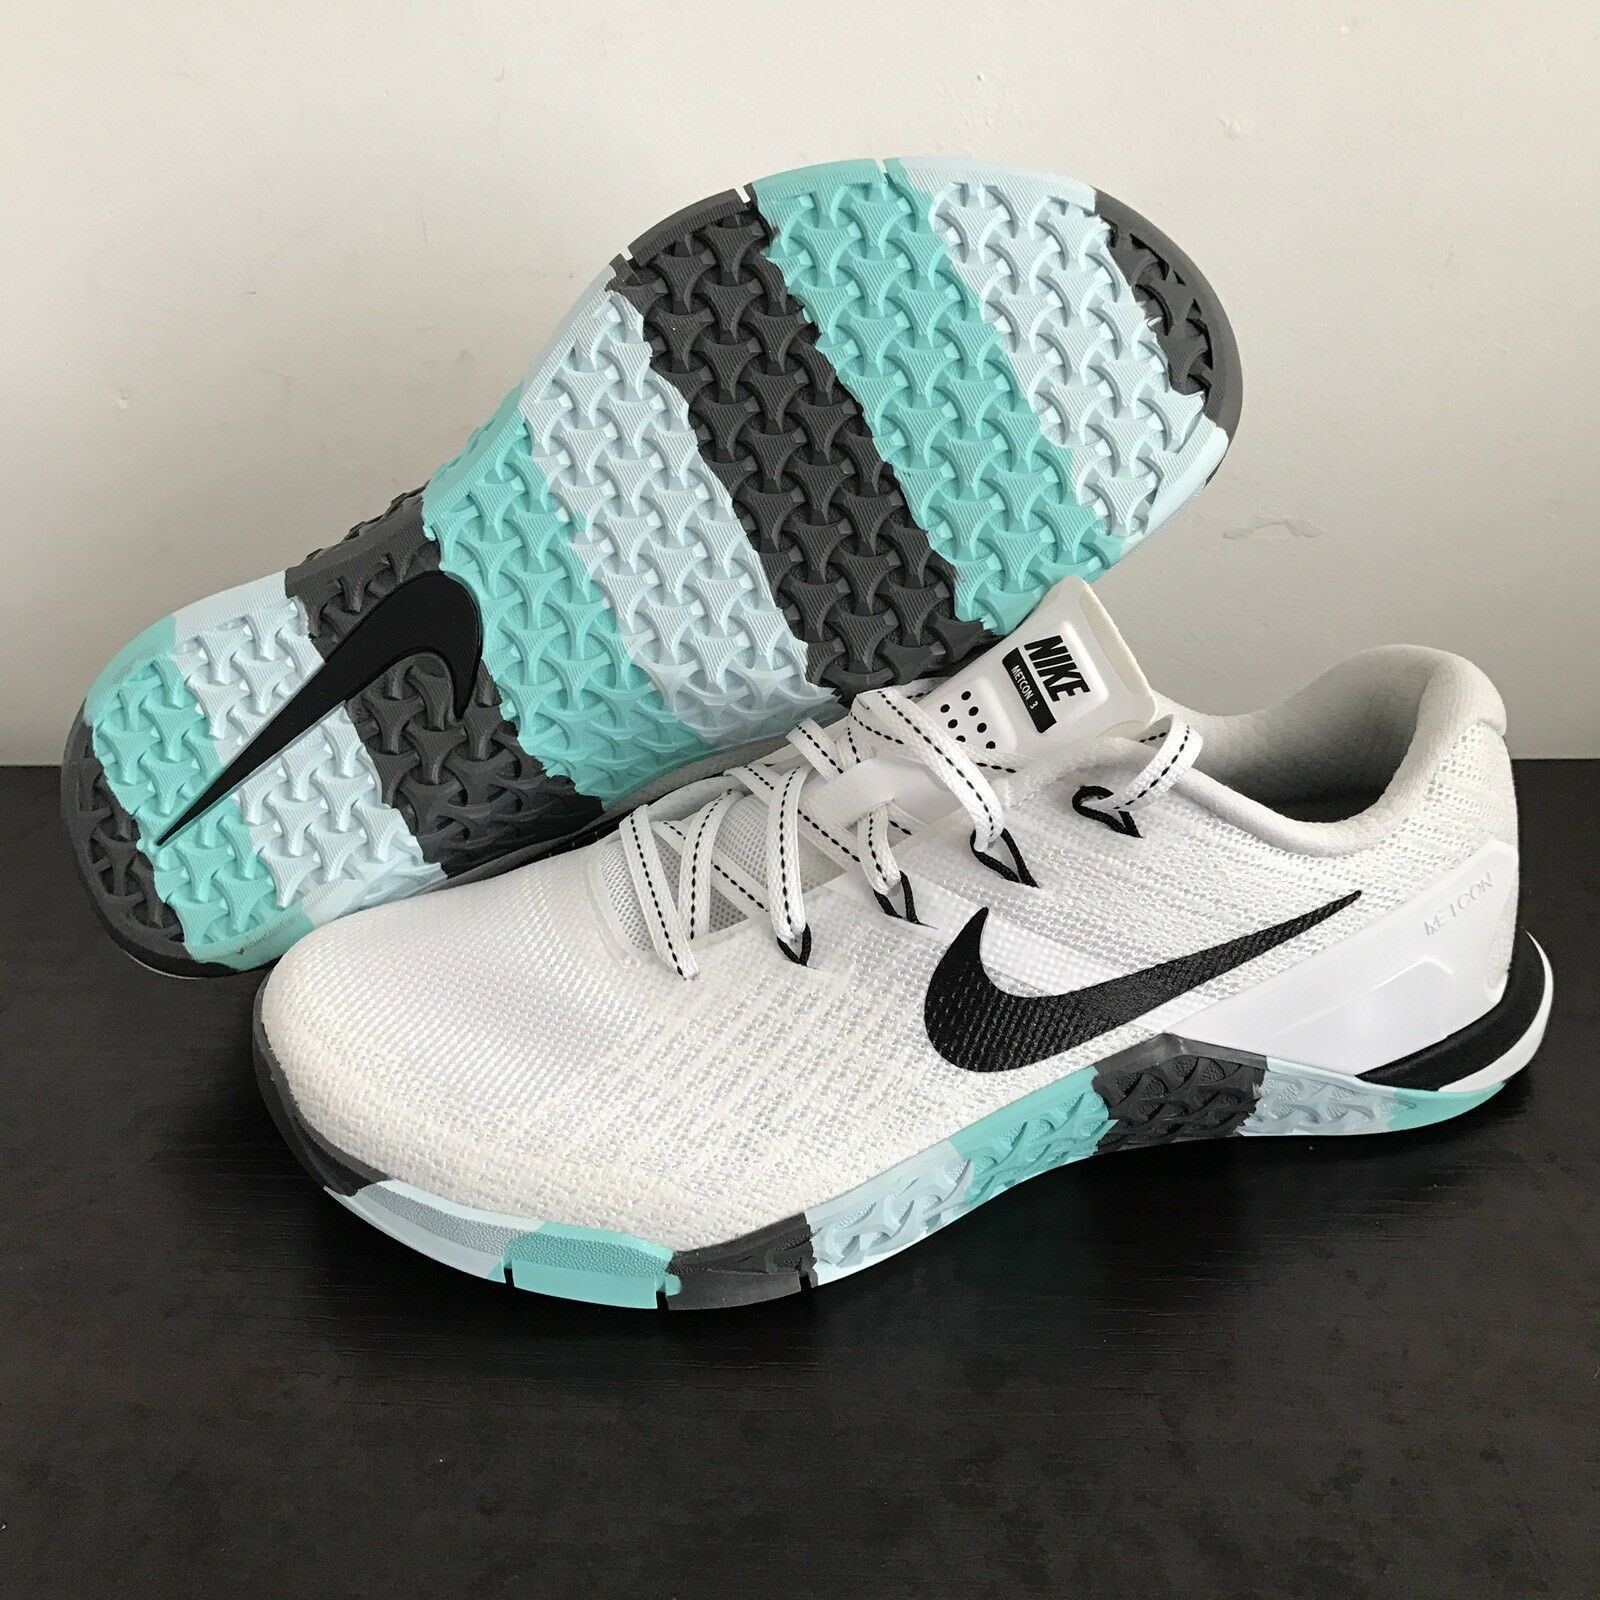 Nike Metcon 3 White Black Grey Teal 849807-101 Cross Training Women Sz 7 The latest discount shoes for men and women